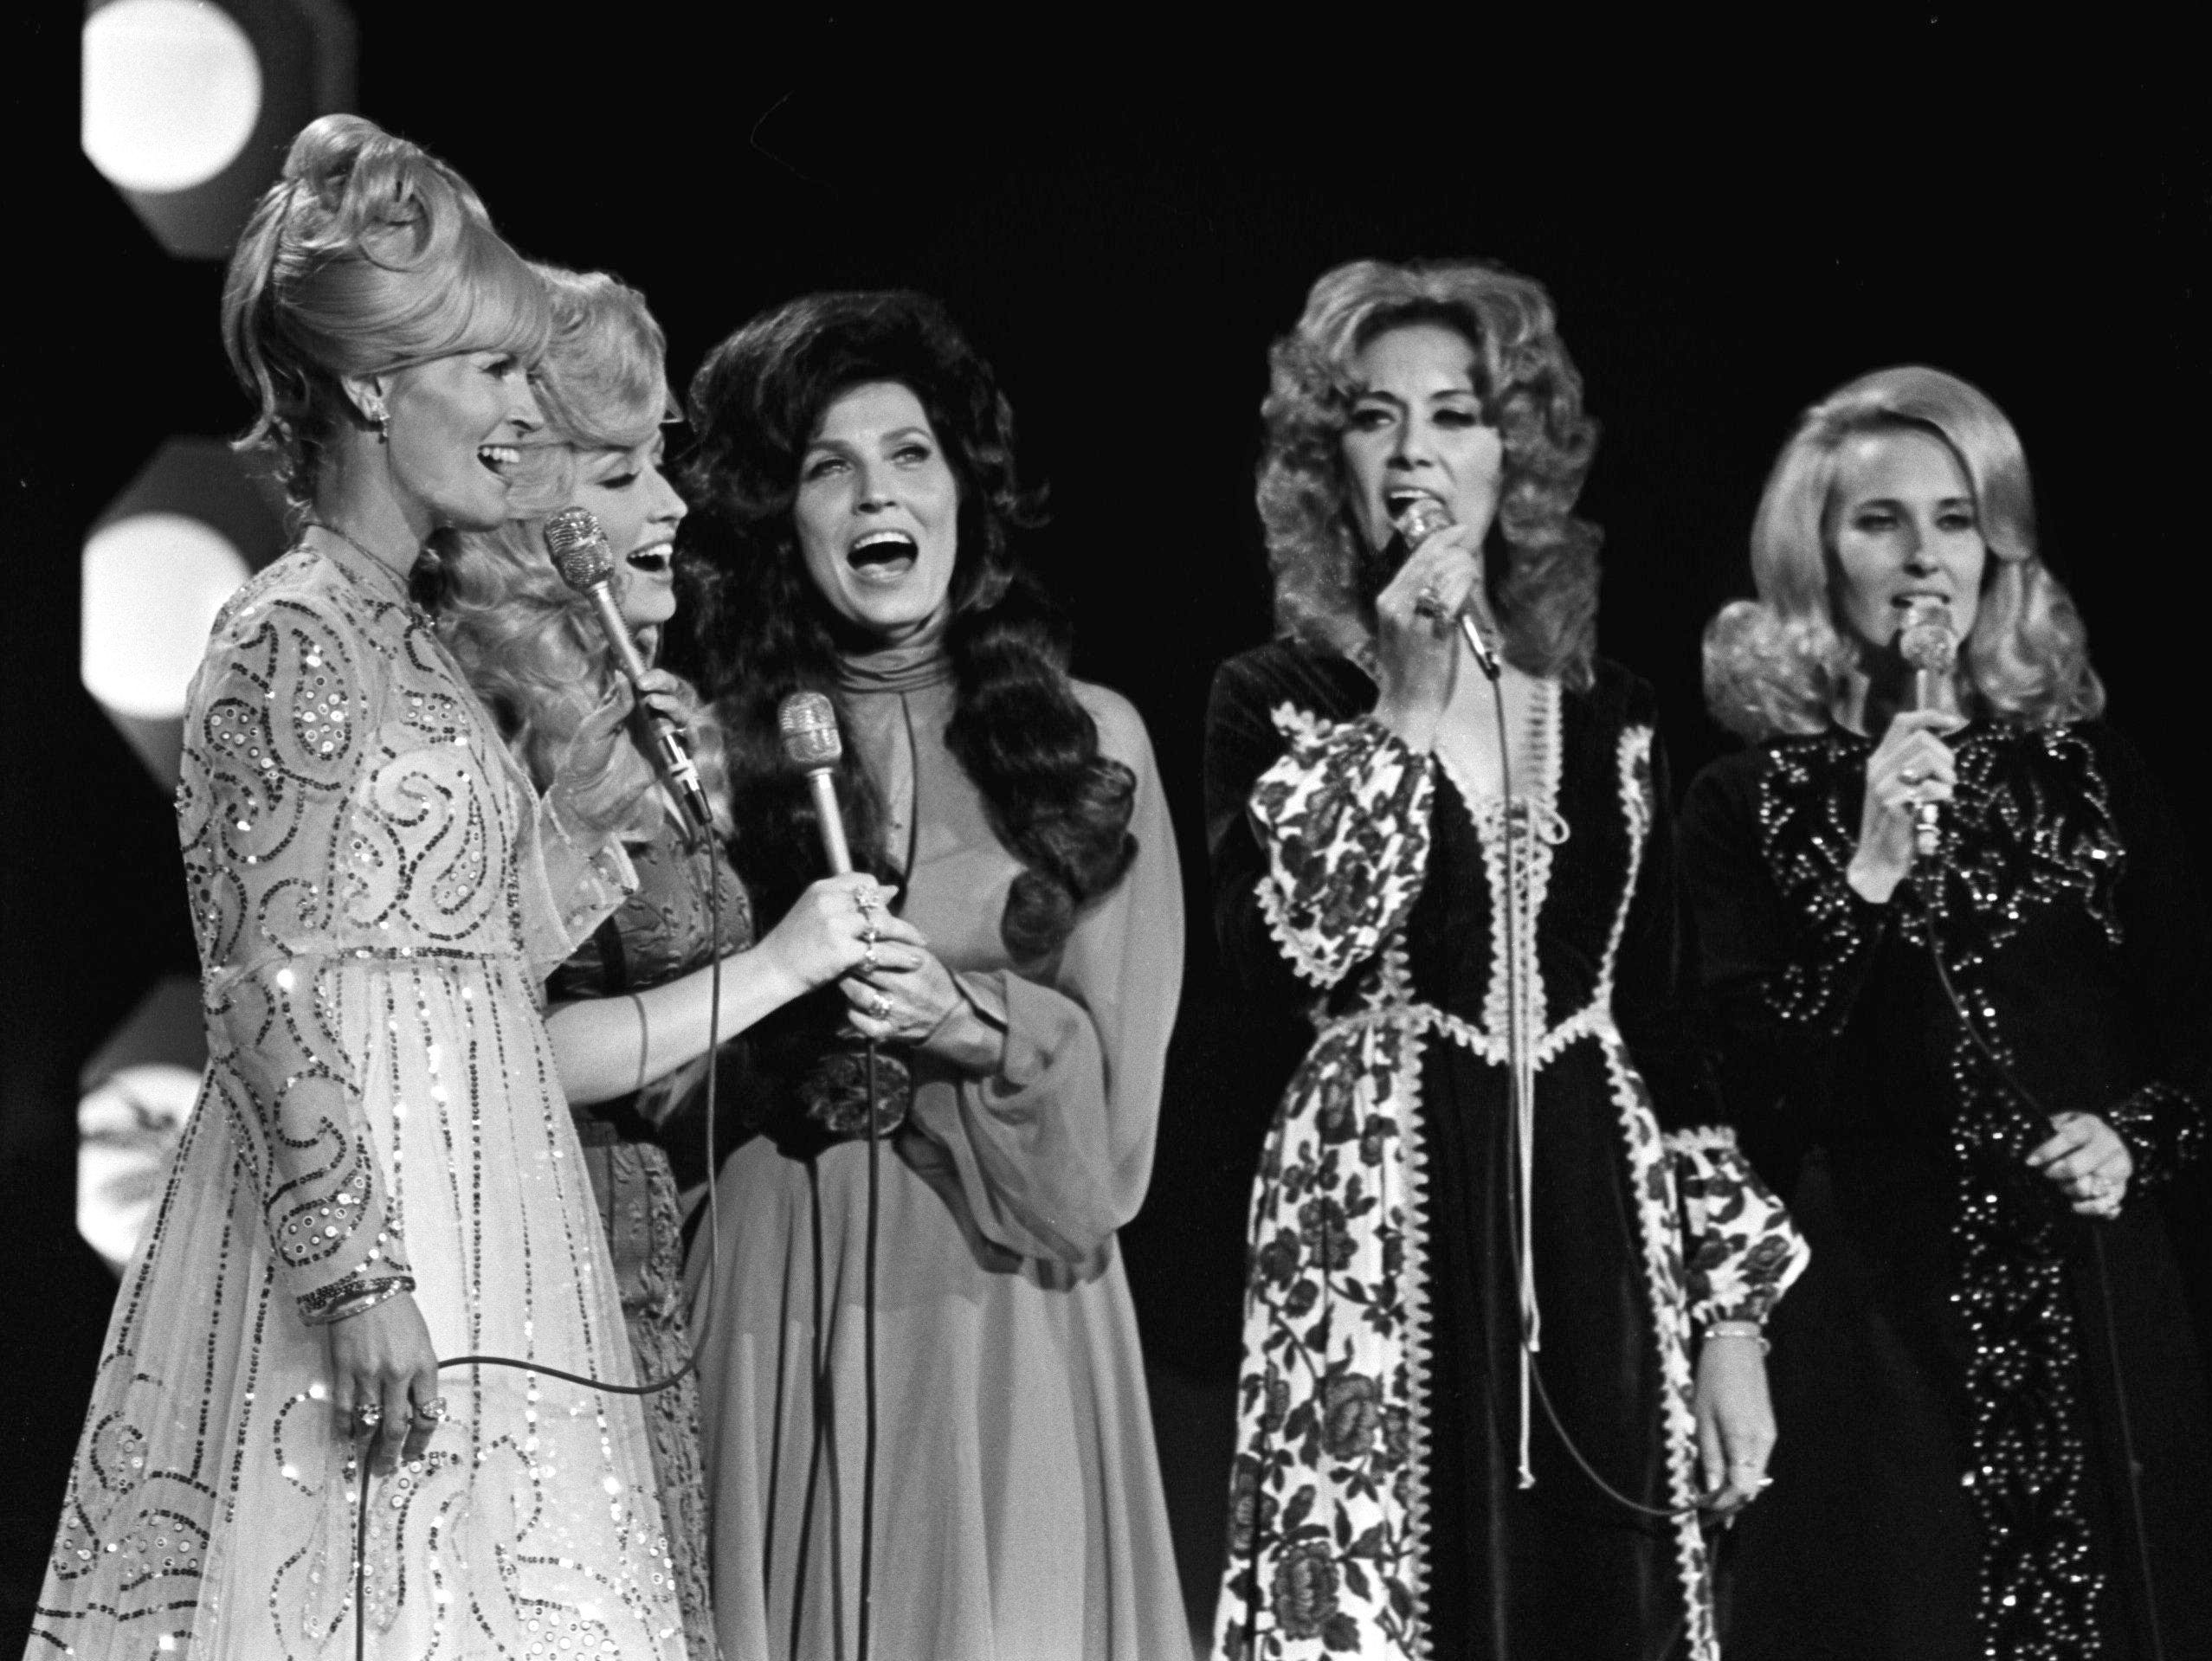 Performing a country girl theme are Lynn Anderson, left, Dolly Parton, Loretta Lynn, Dottie West and Tammy Wynette during the annual CMA Awards show at the Grand Ole Opry House on Oct. 16, 1972.